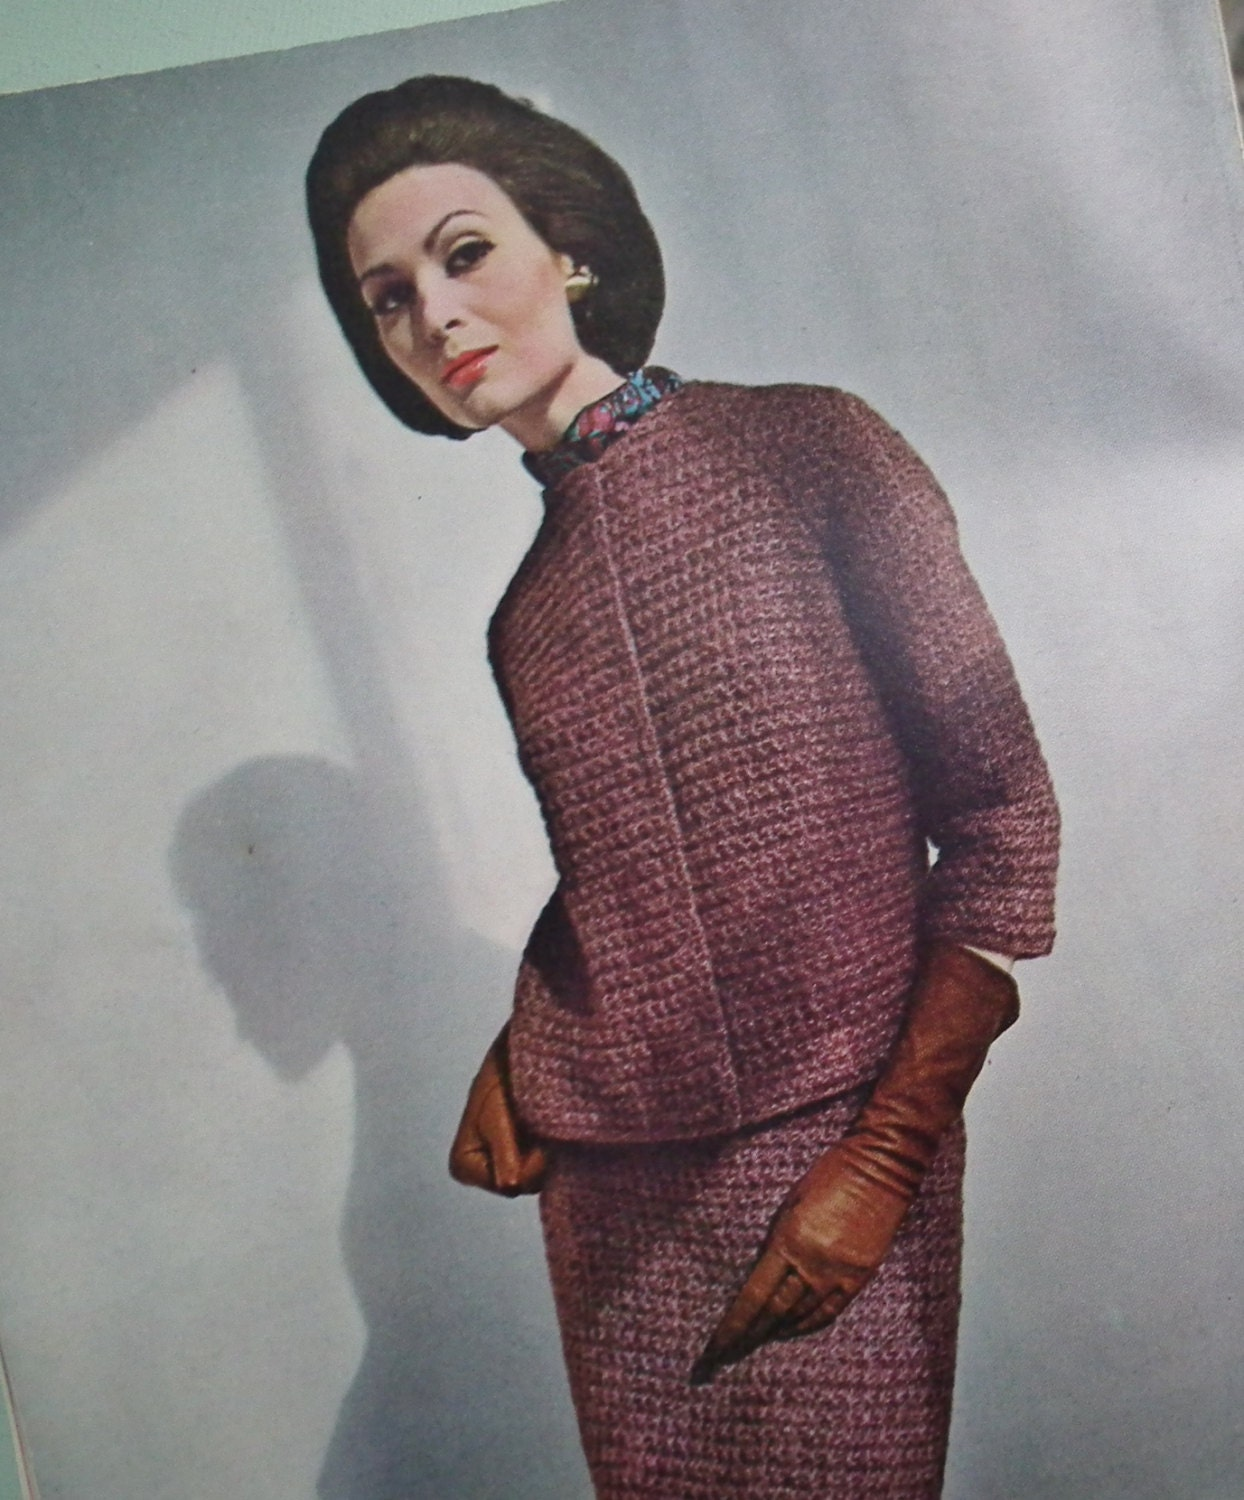 Vintage Vogue Knitting Patterns 1960s Vogue by sewmuchfrippery